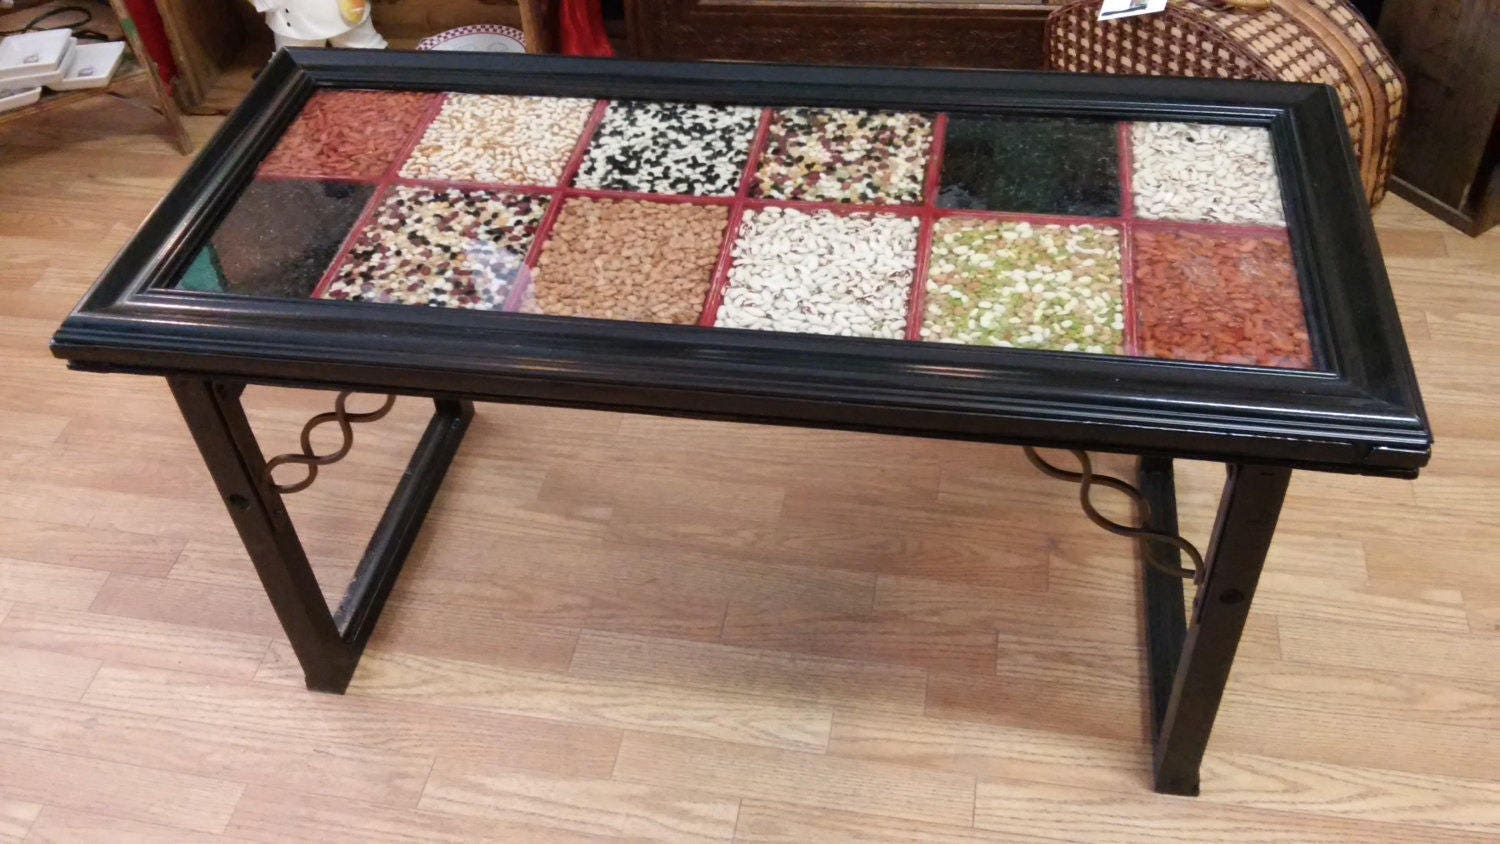 Recycled Window Coffee Table 12 Pane Reclaimed Window filled with